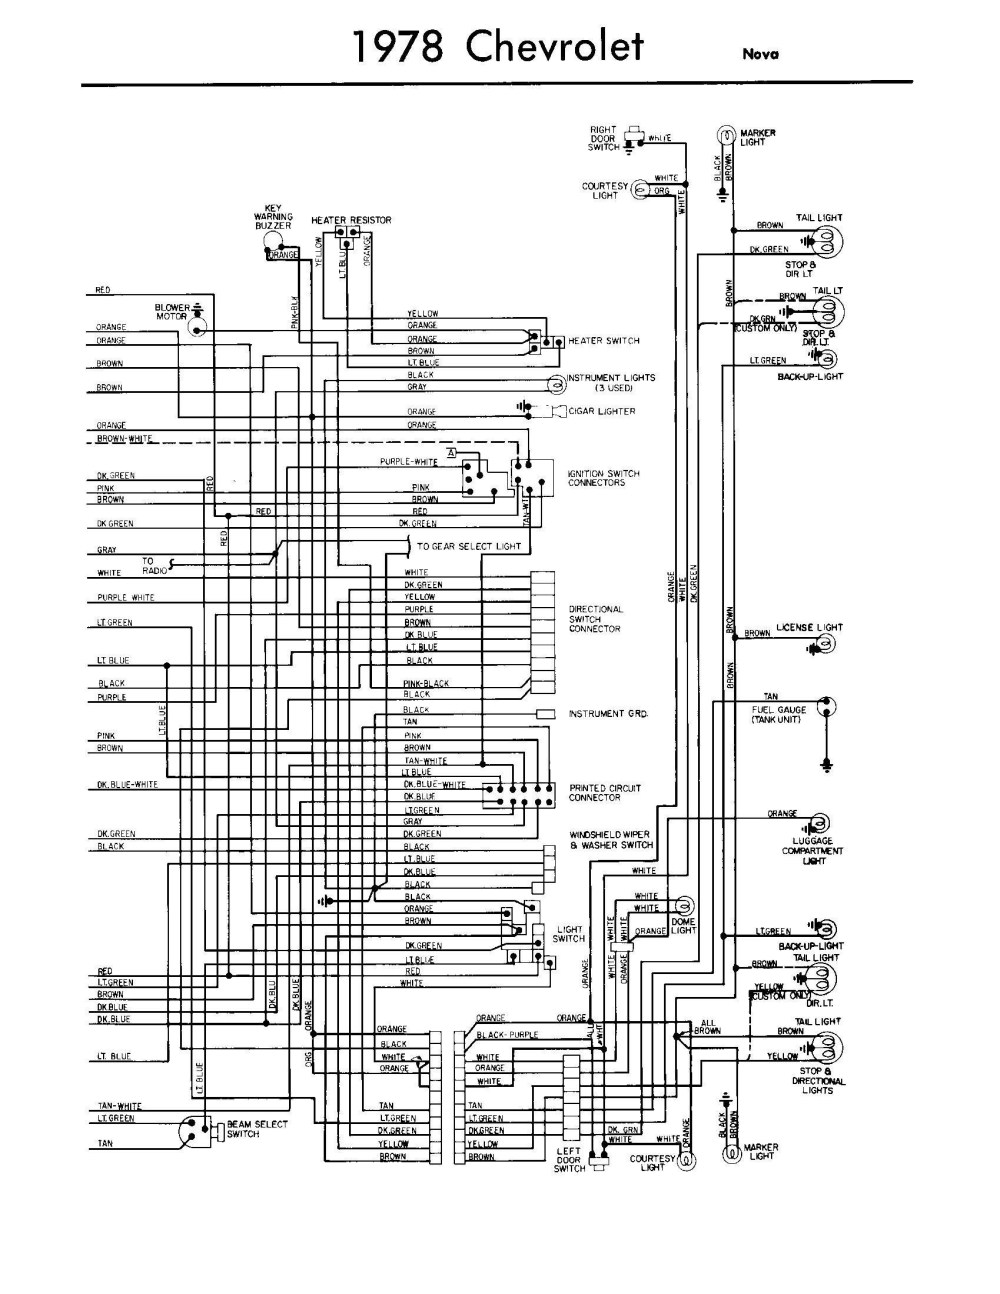 medium resolution of 1977 chevy truck wiring harness wiring diagram post 1977 chevy truck wiring harness 1977 chevy pickup